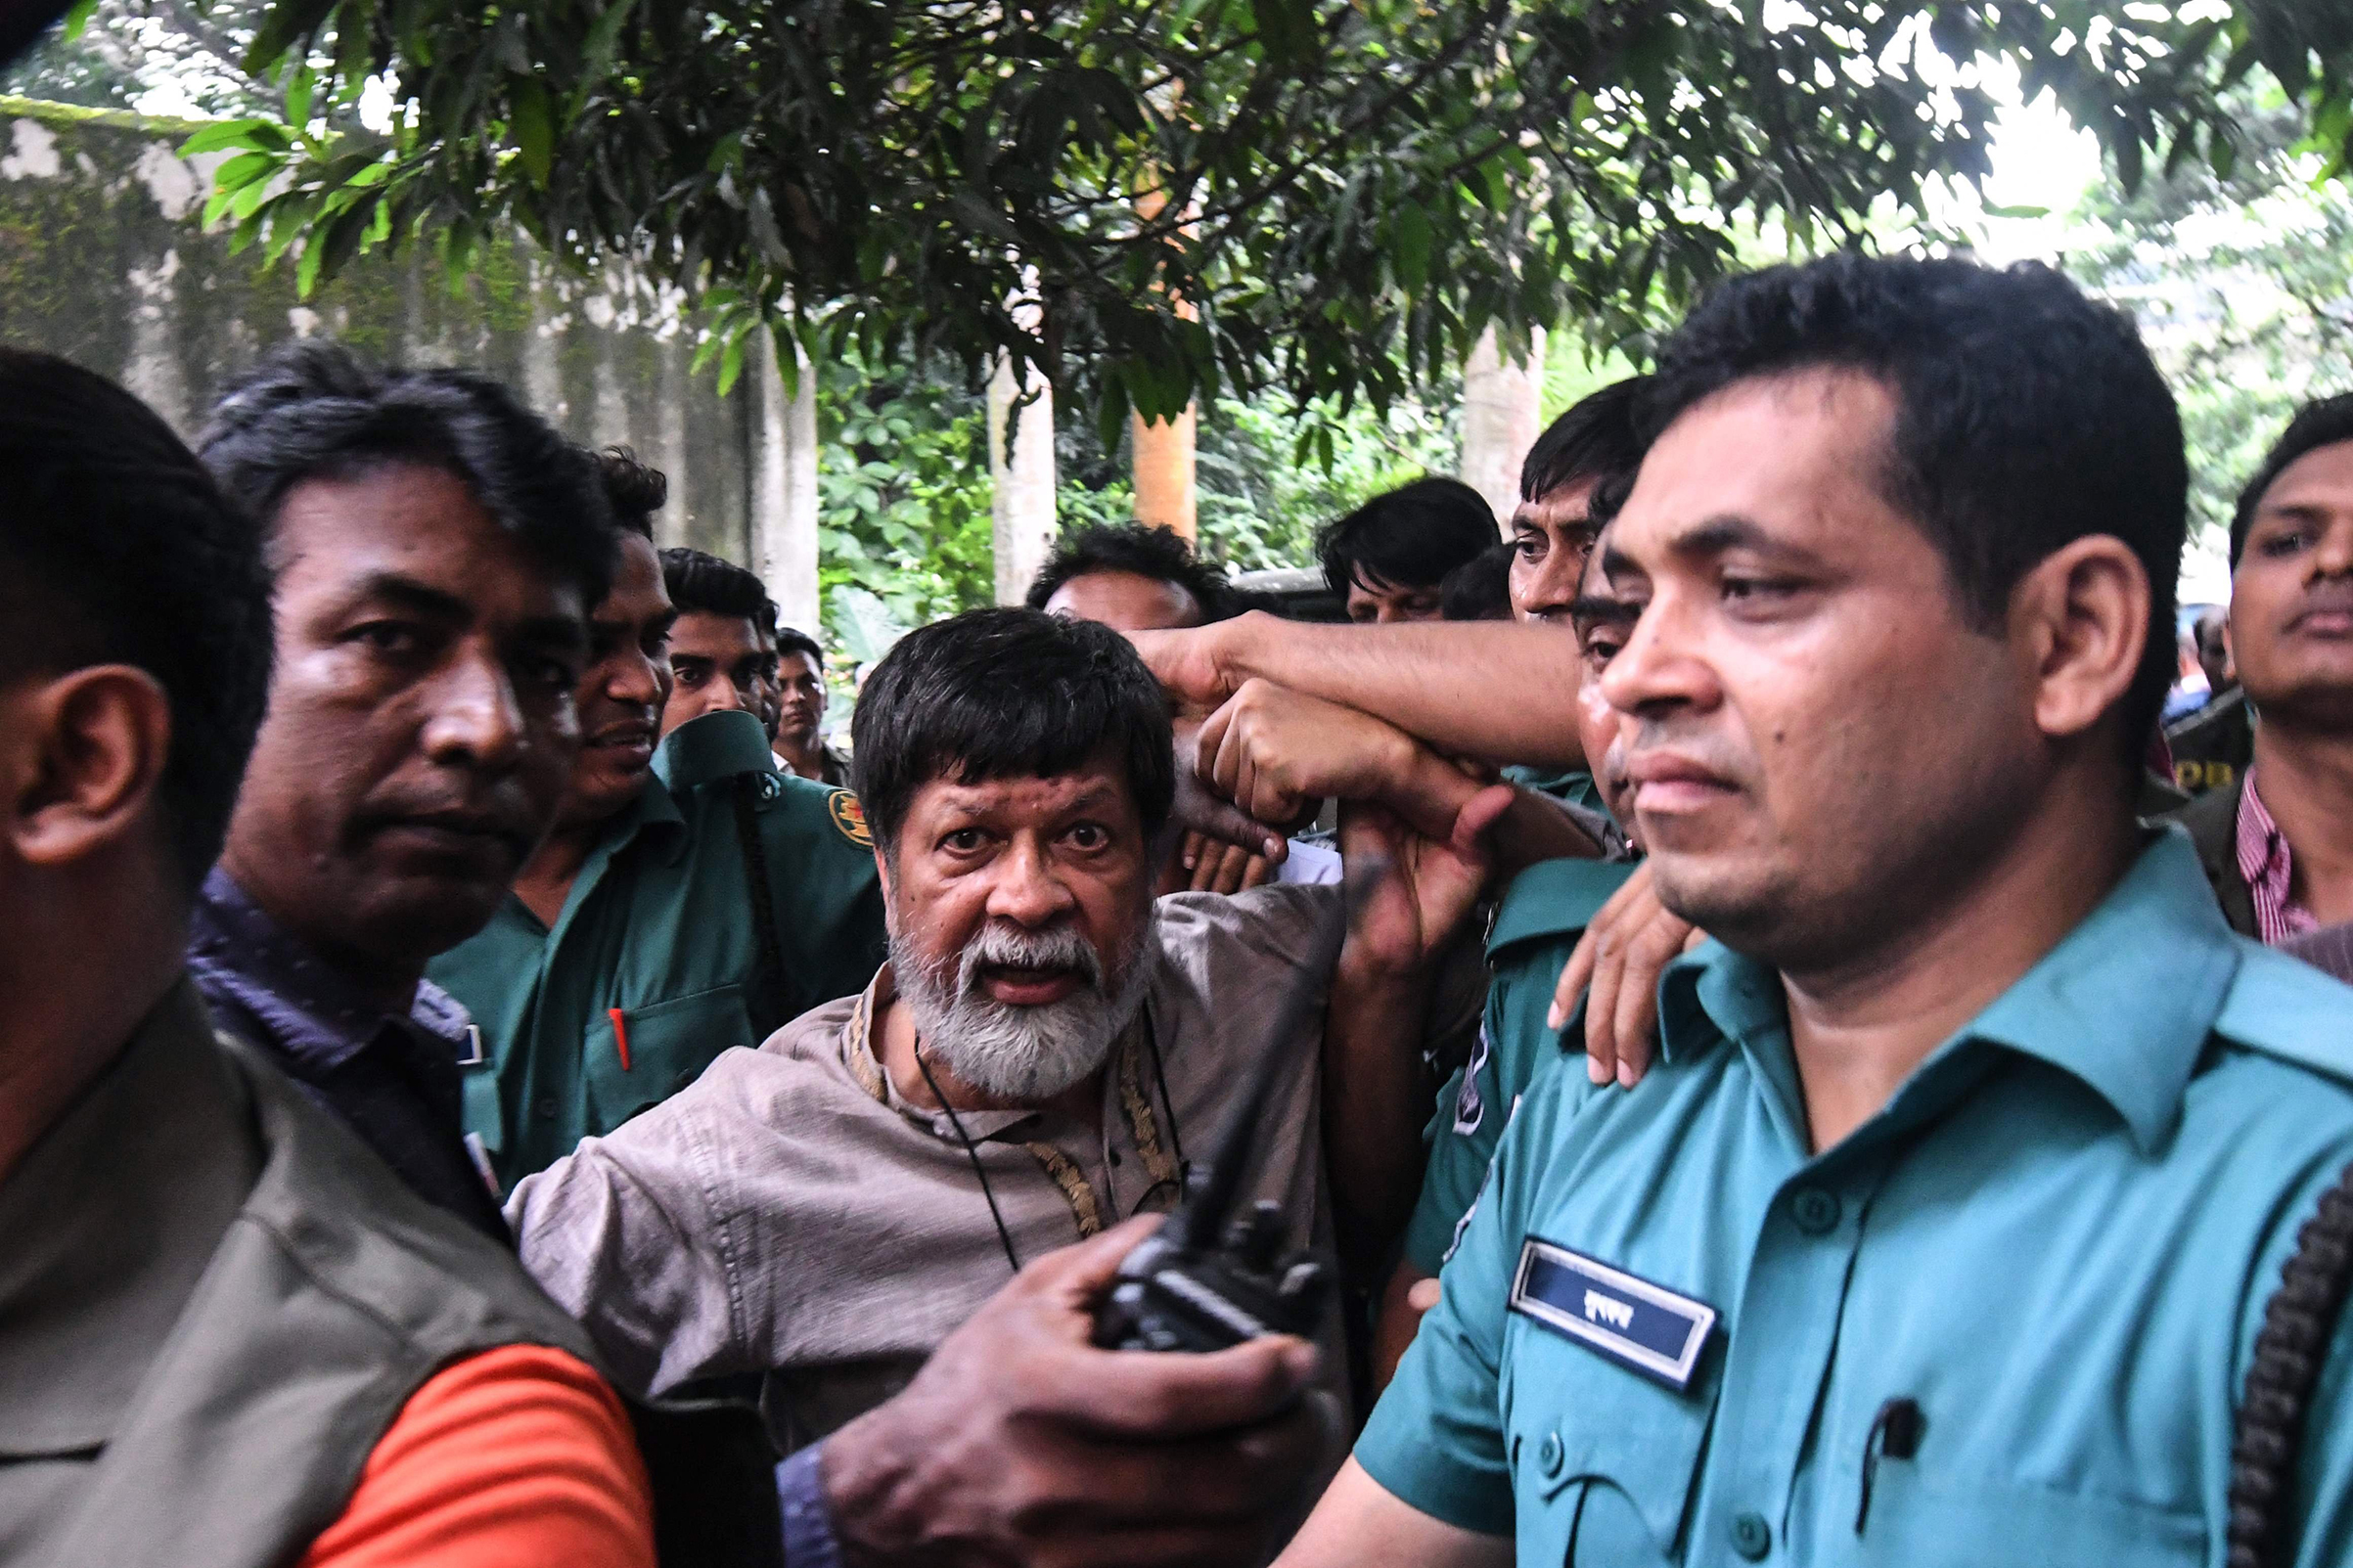 Activists and photographer Shahidul Alam arrives surrounded by policemen for a court appearance in Dhaka on Aug. 6, 2018.